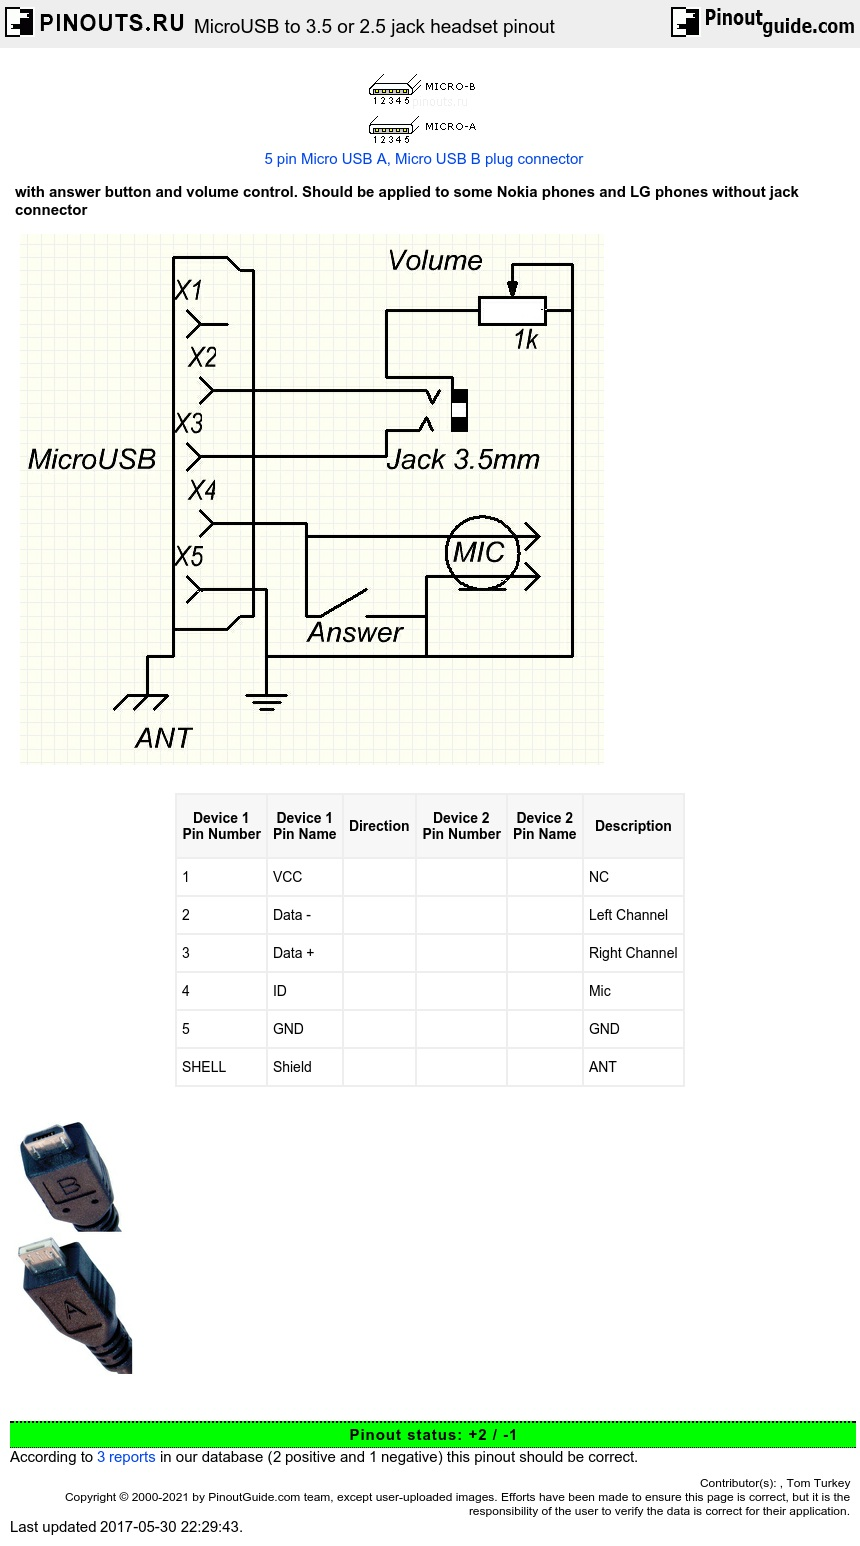 MicroUSB to 3.5 or 2.5 jack headset diagram